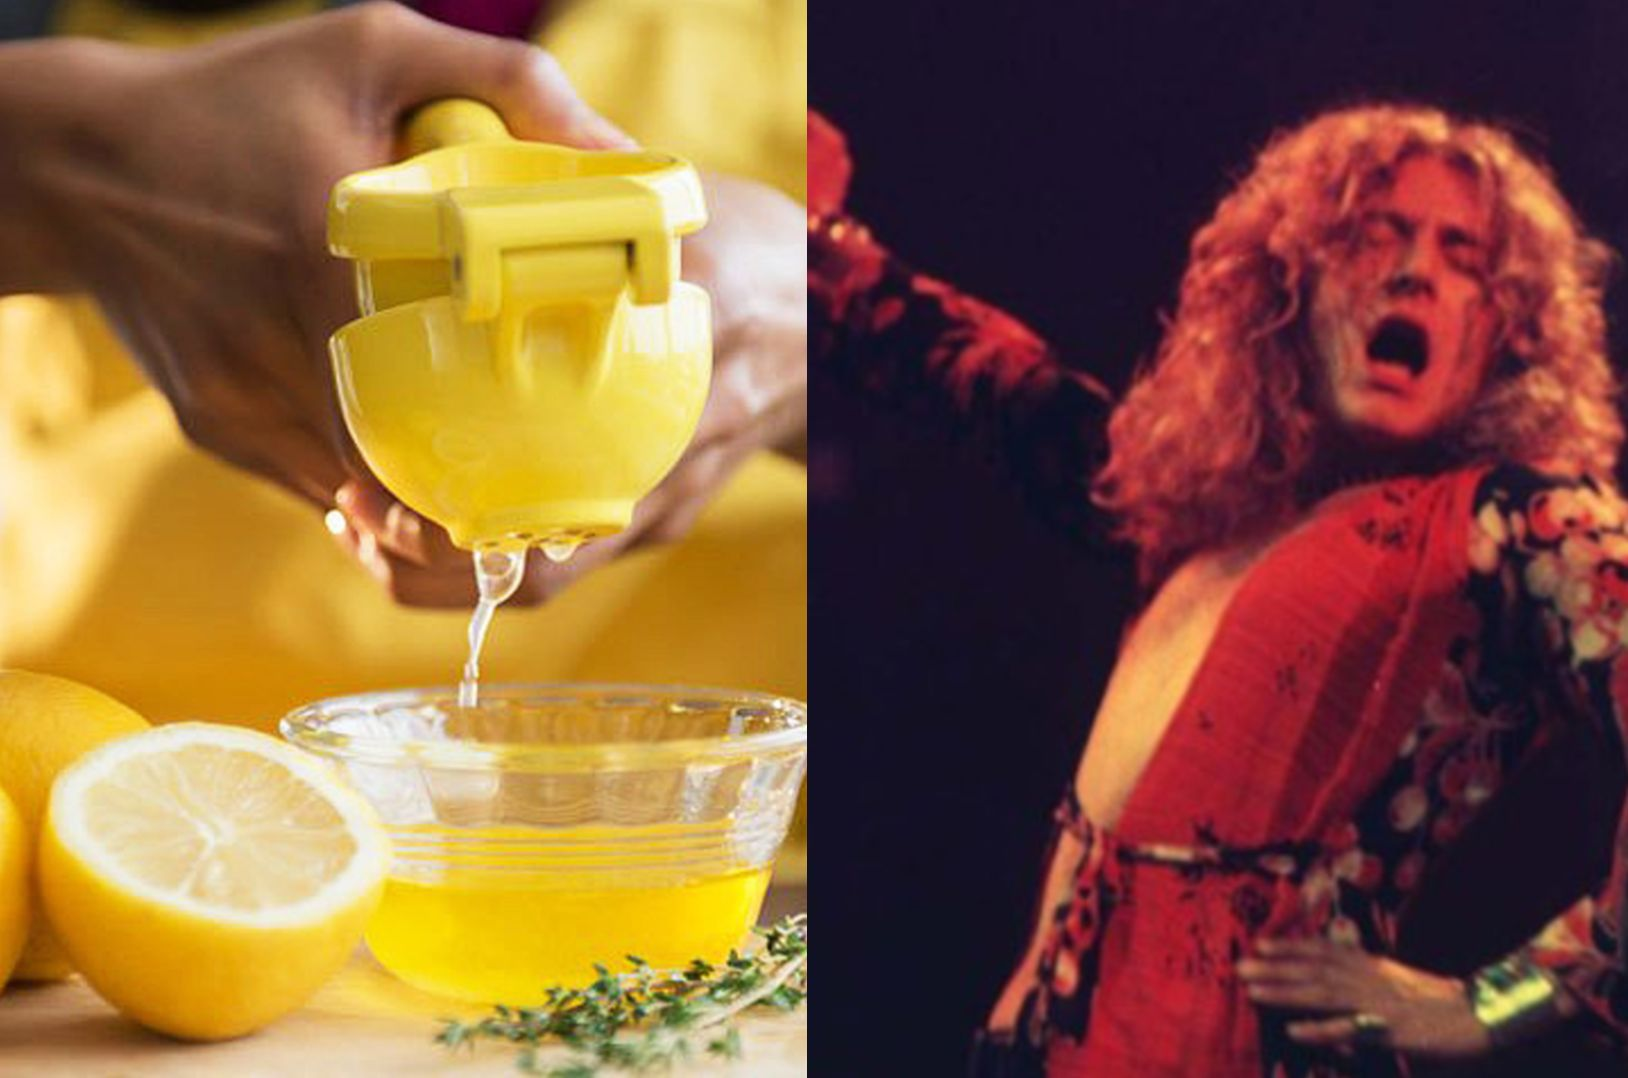 Hands squeezing juice from a lemon press into a bowl, opposite Robert Plant on stage with his mouth agape and eyes closed